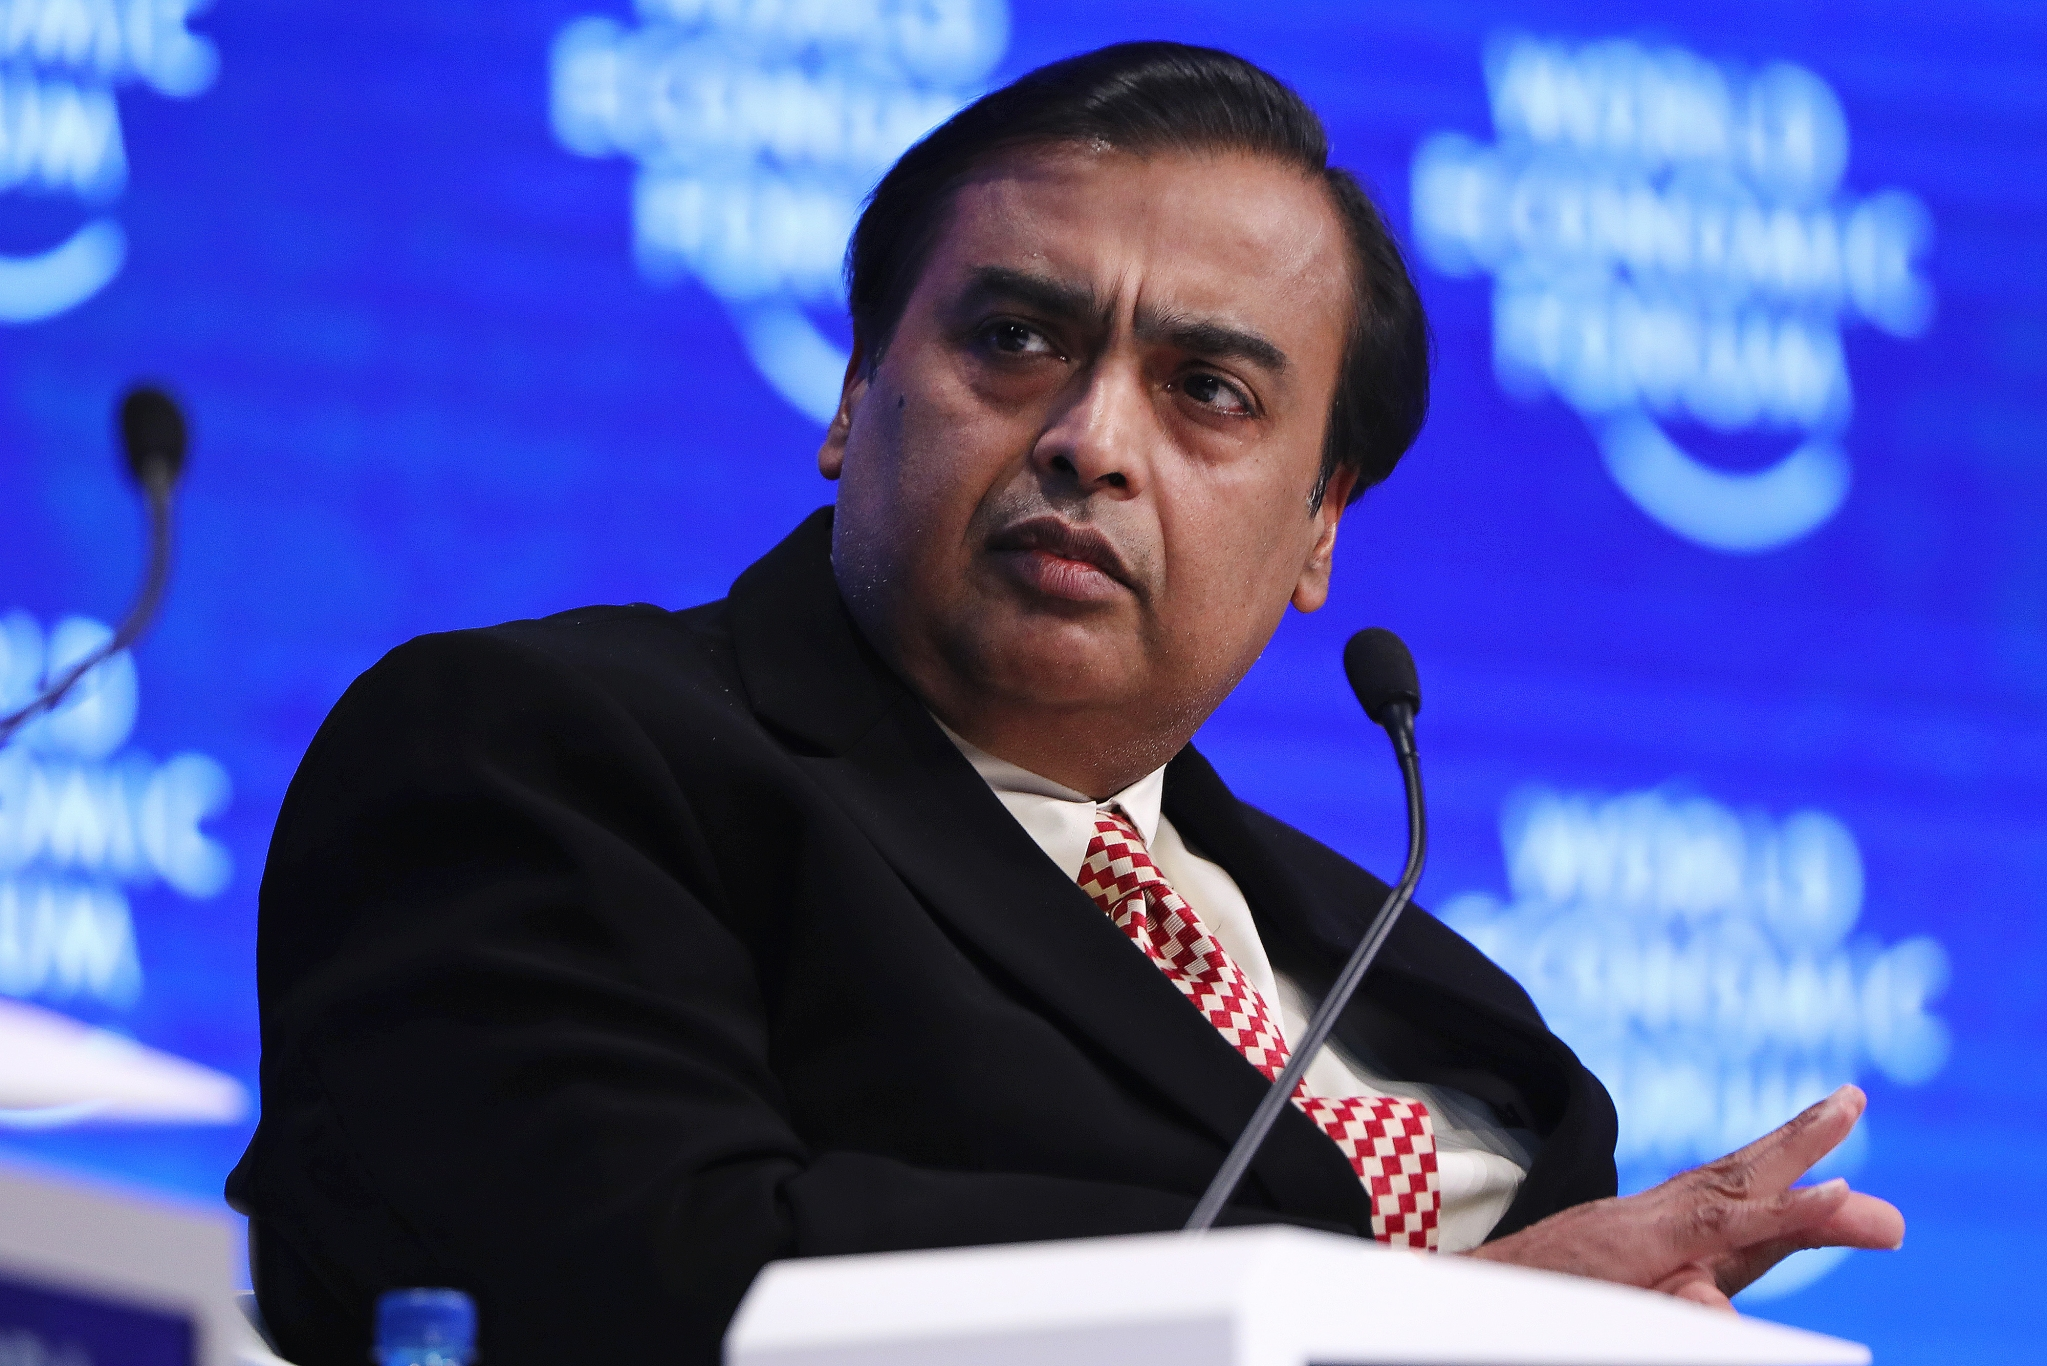 Mukesh Ambani Reliance Industries To Be Among Top 20 Global Firms Bloomberg Quint